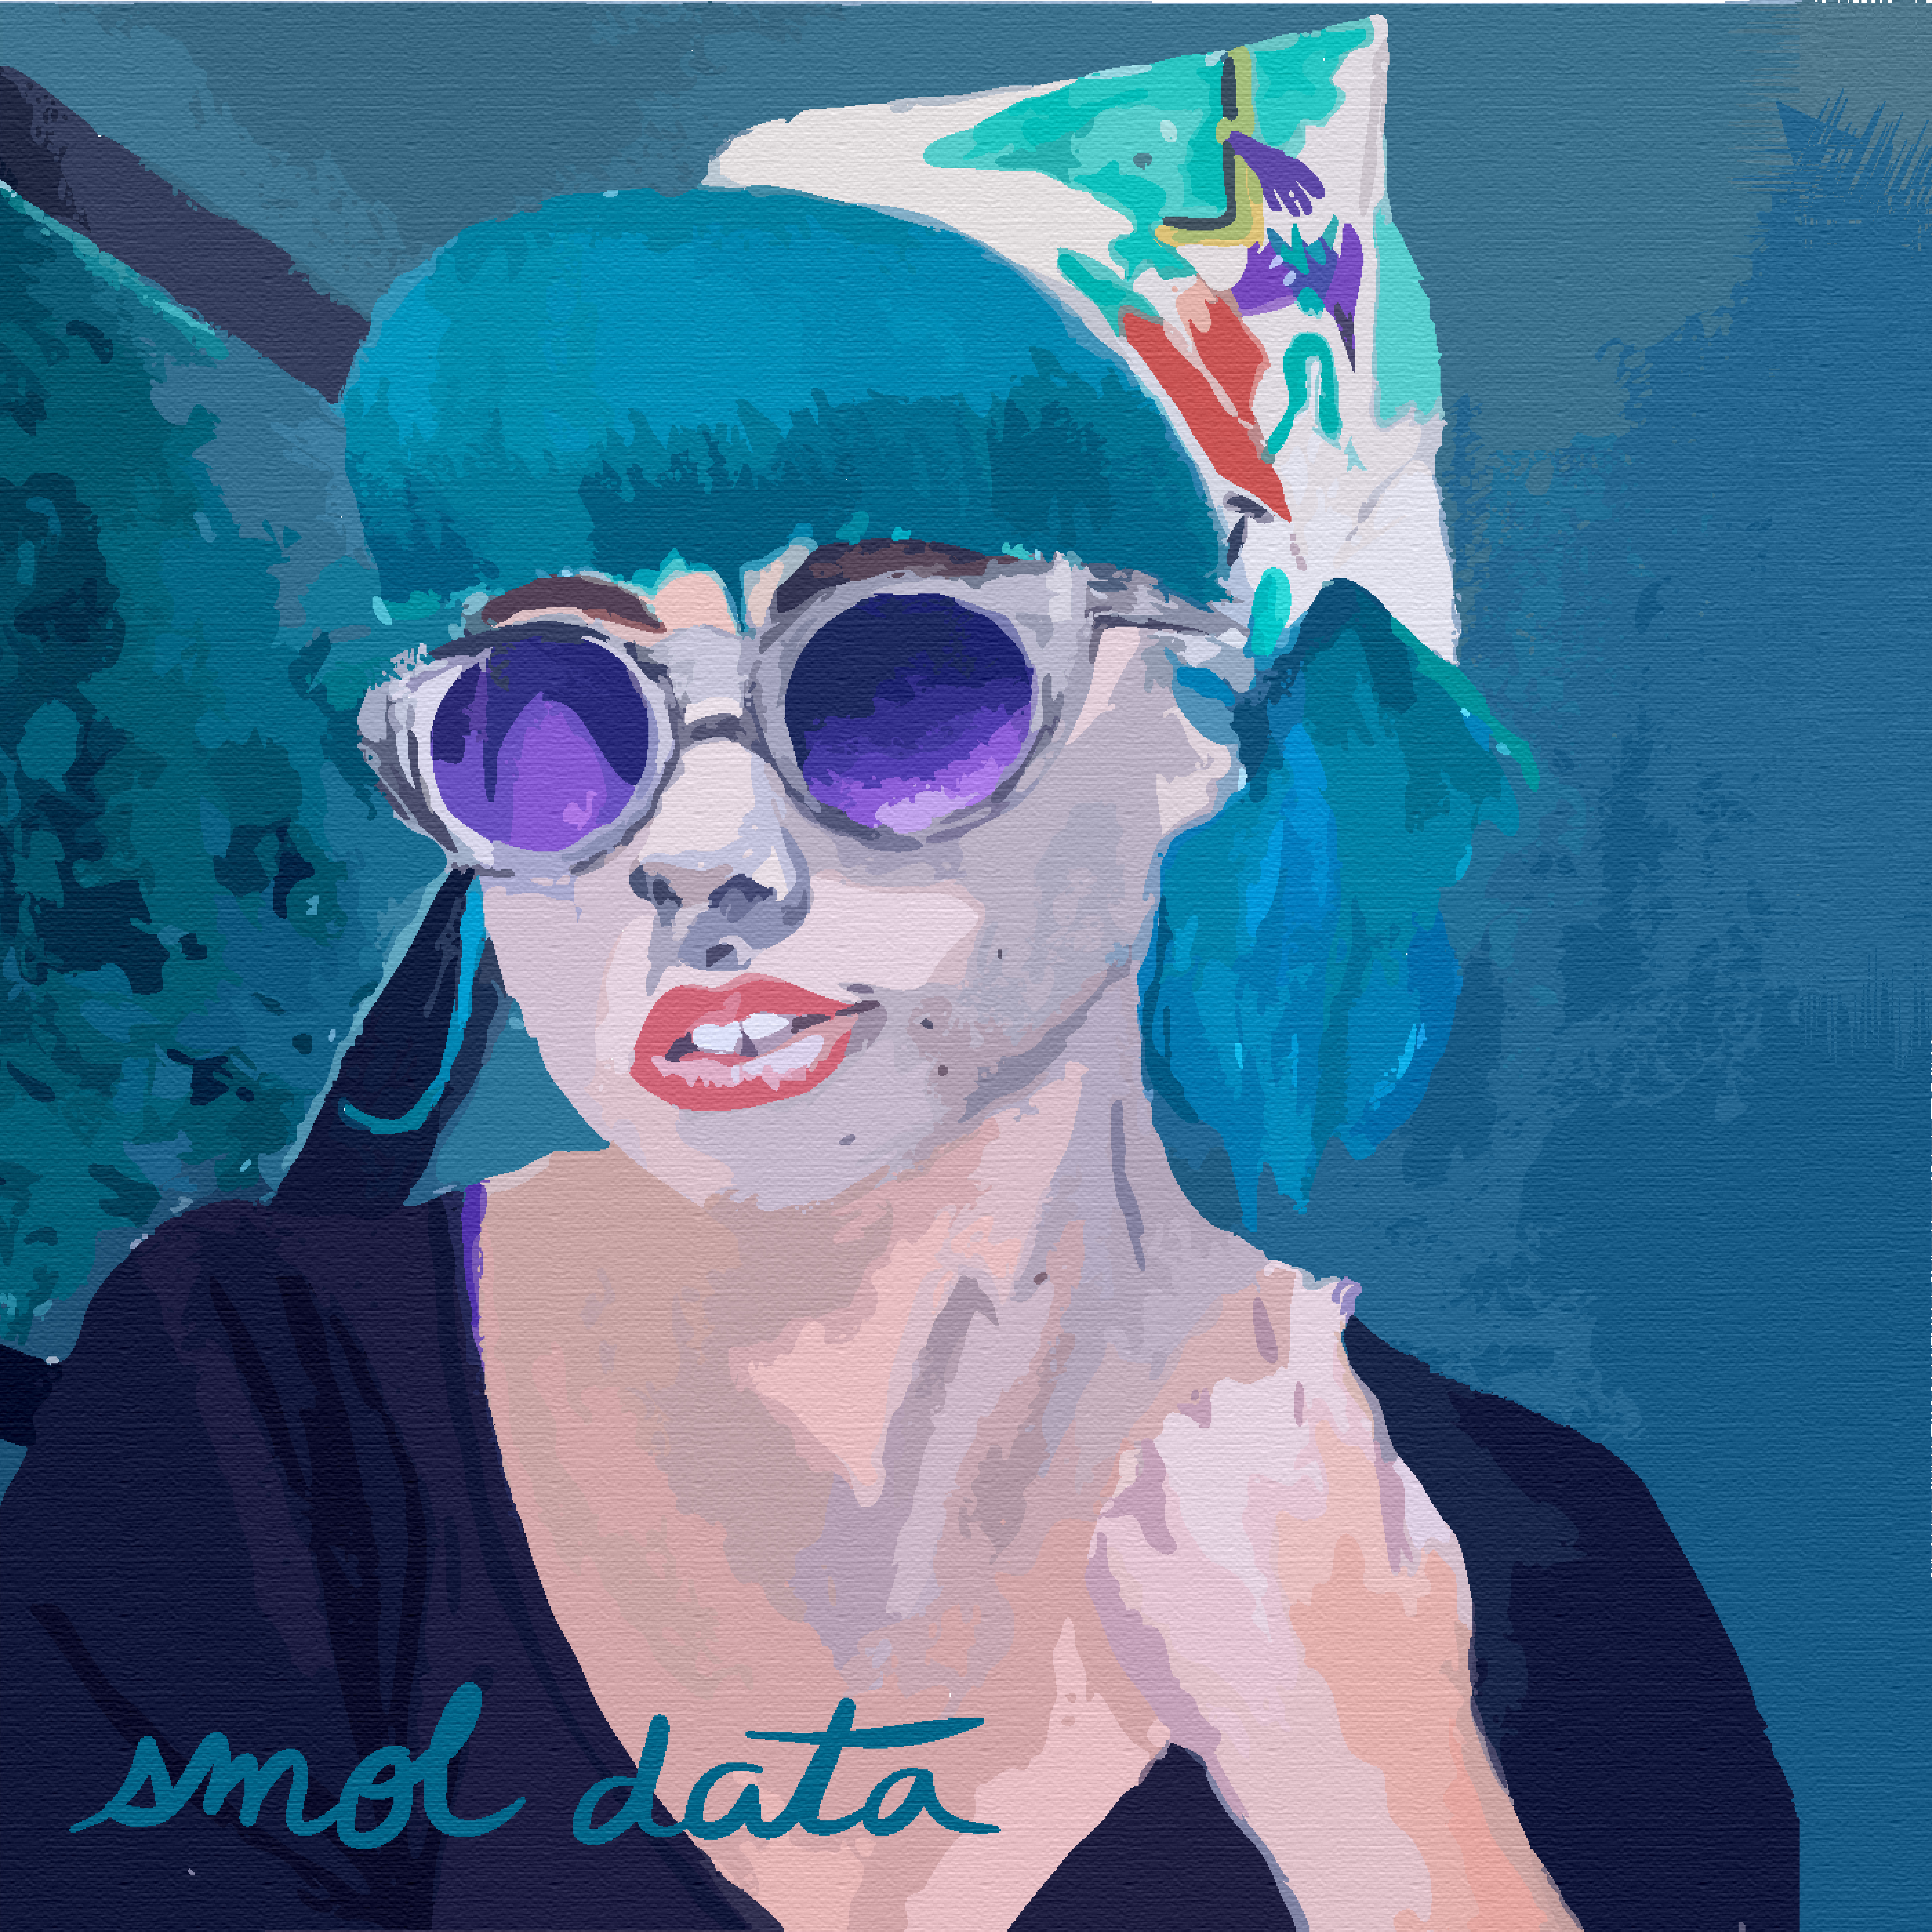 Smol Data - Smol Data: An EP